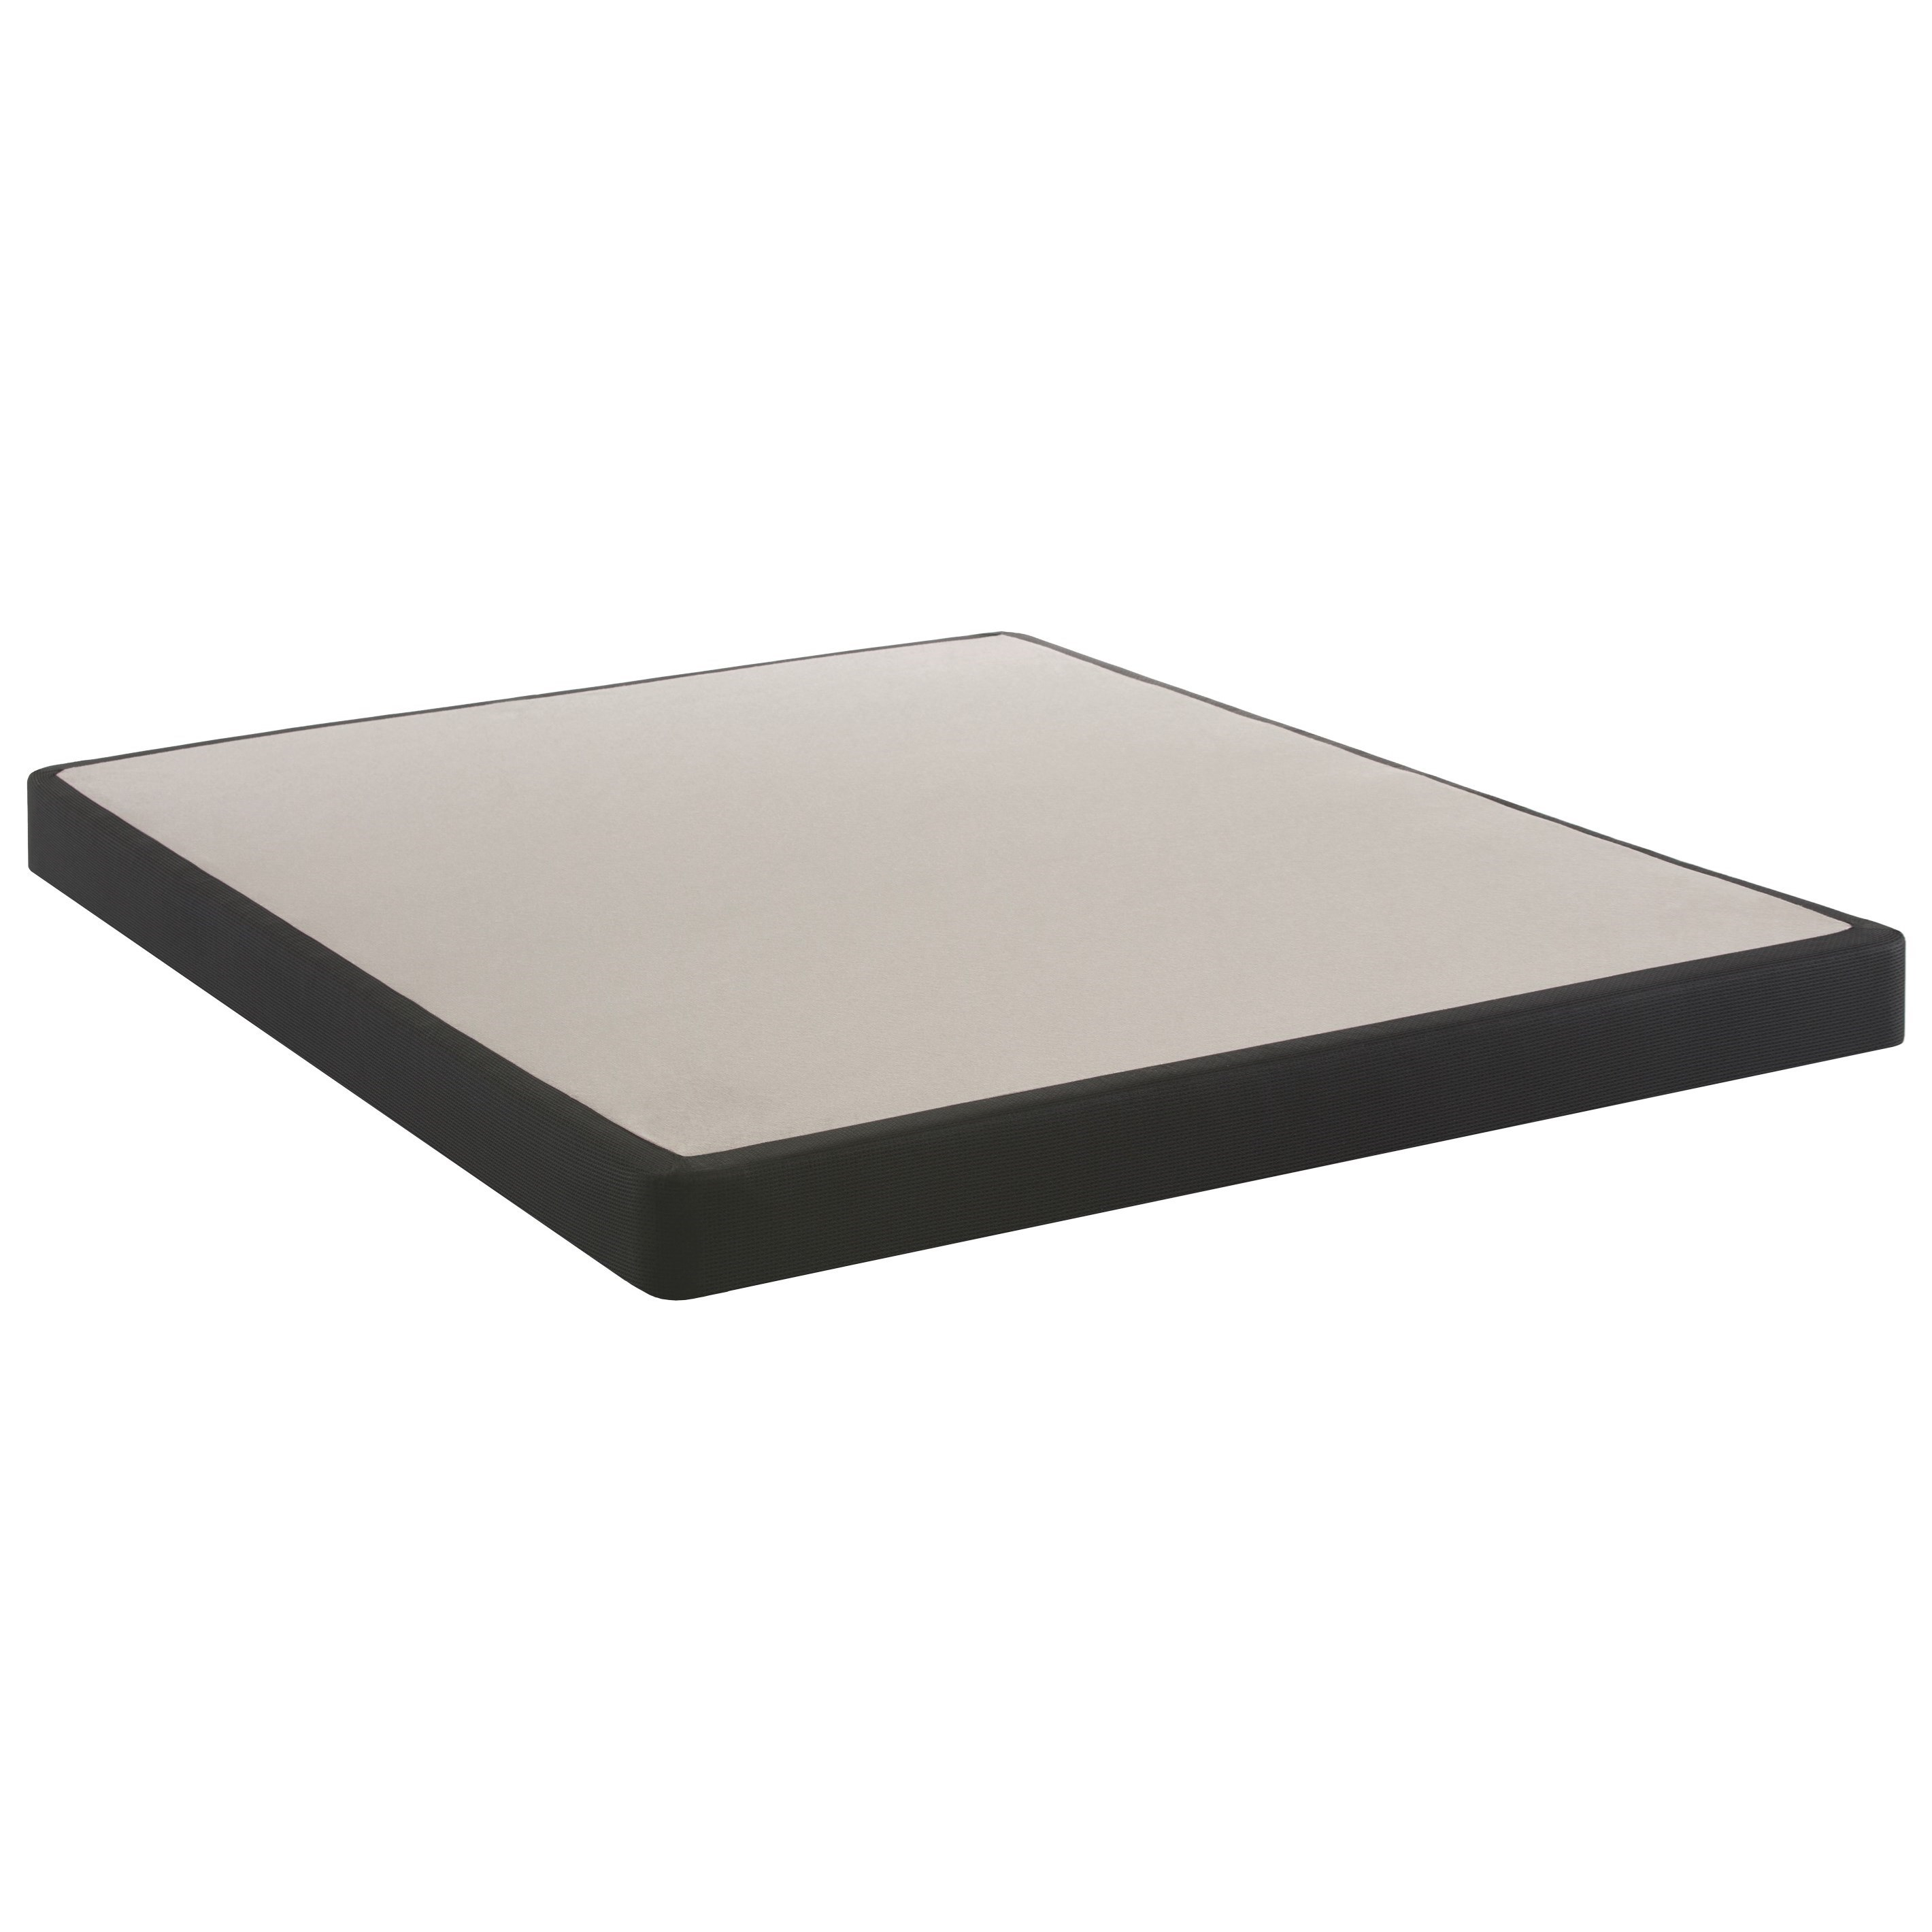 """2017 StableSupport Foundations Twin Low Profile Base 5"""" Height by Sealy at Sprintz Furniture"""